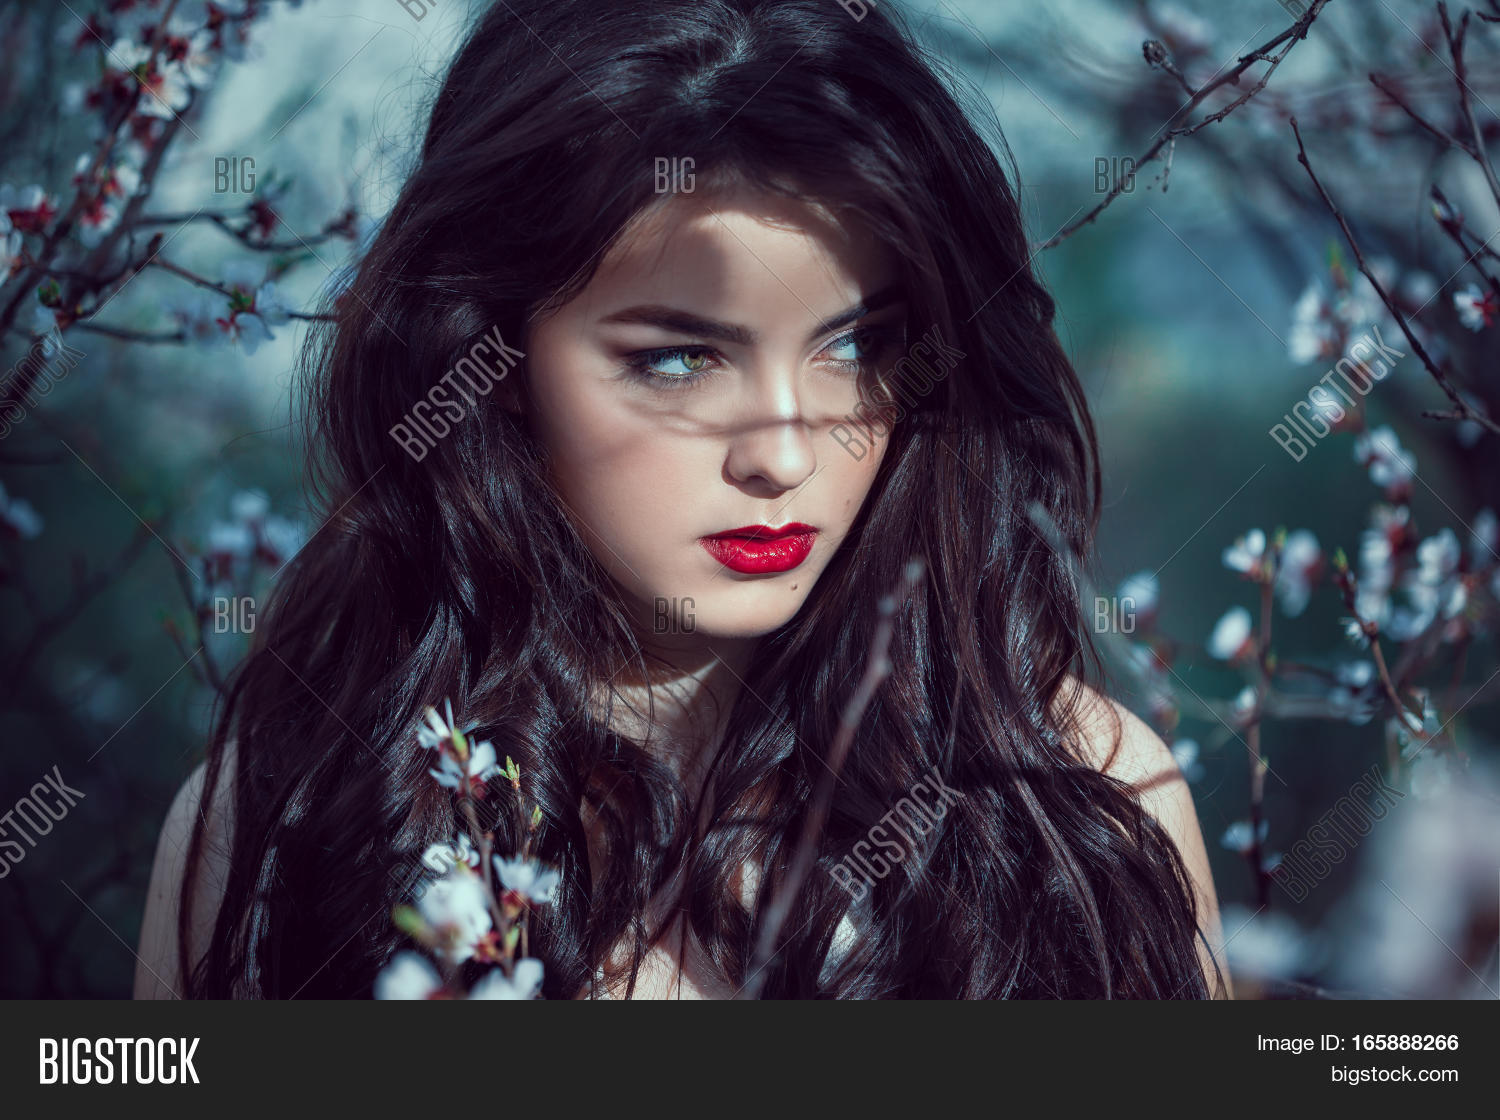 Fashion art mystical spring model image photo bigstock fashion art mystical spring model girl portrait in moonlight night sexy glamour summer beautiful woman izmirmasajfo Image collections